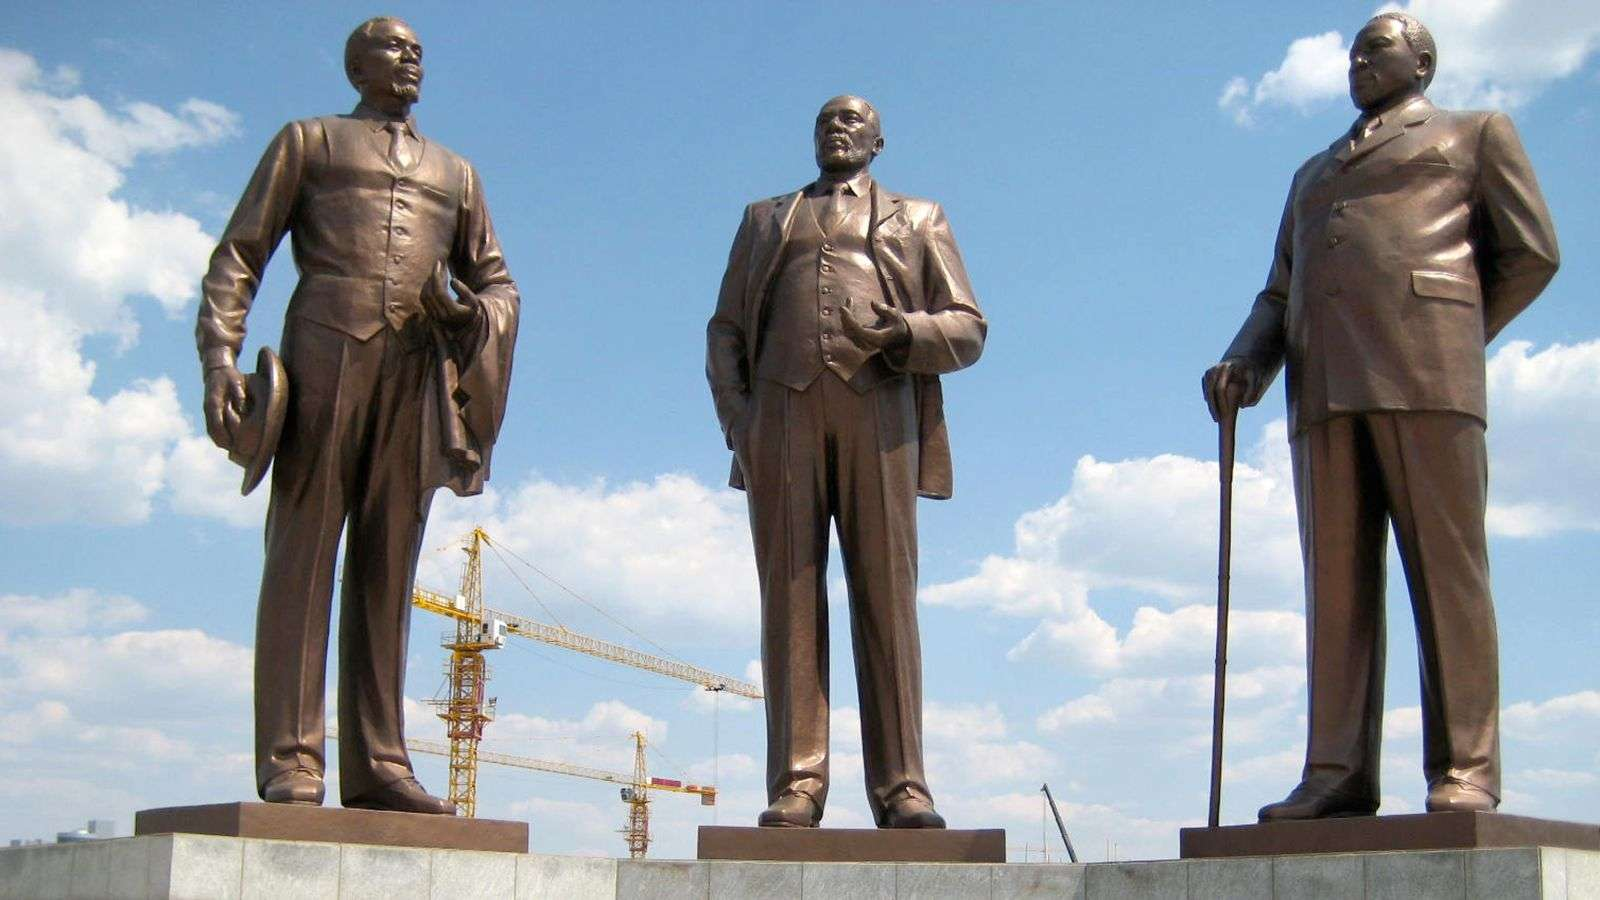 These gargantuan North Korean statues can be found all over Africa